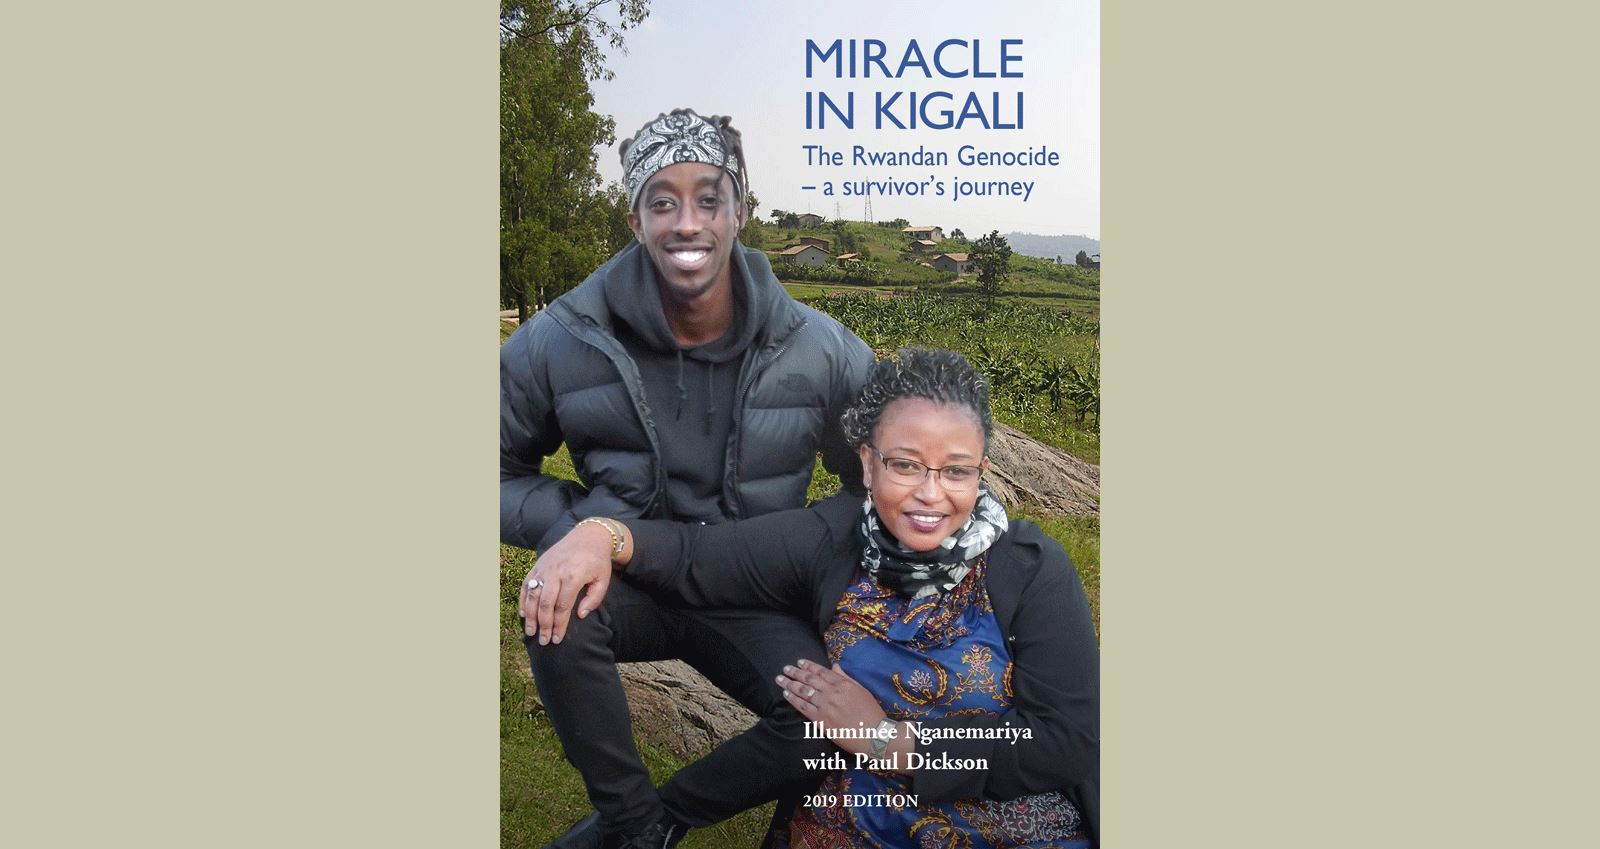 Miracle in Kigali cover press release article feature image